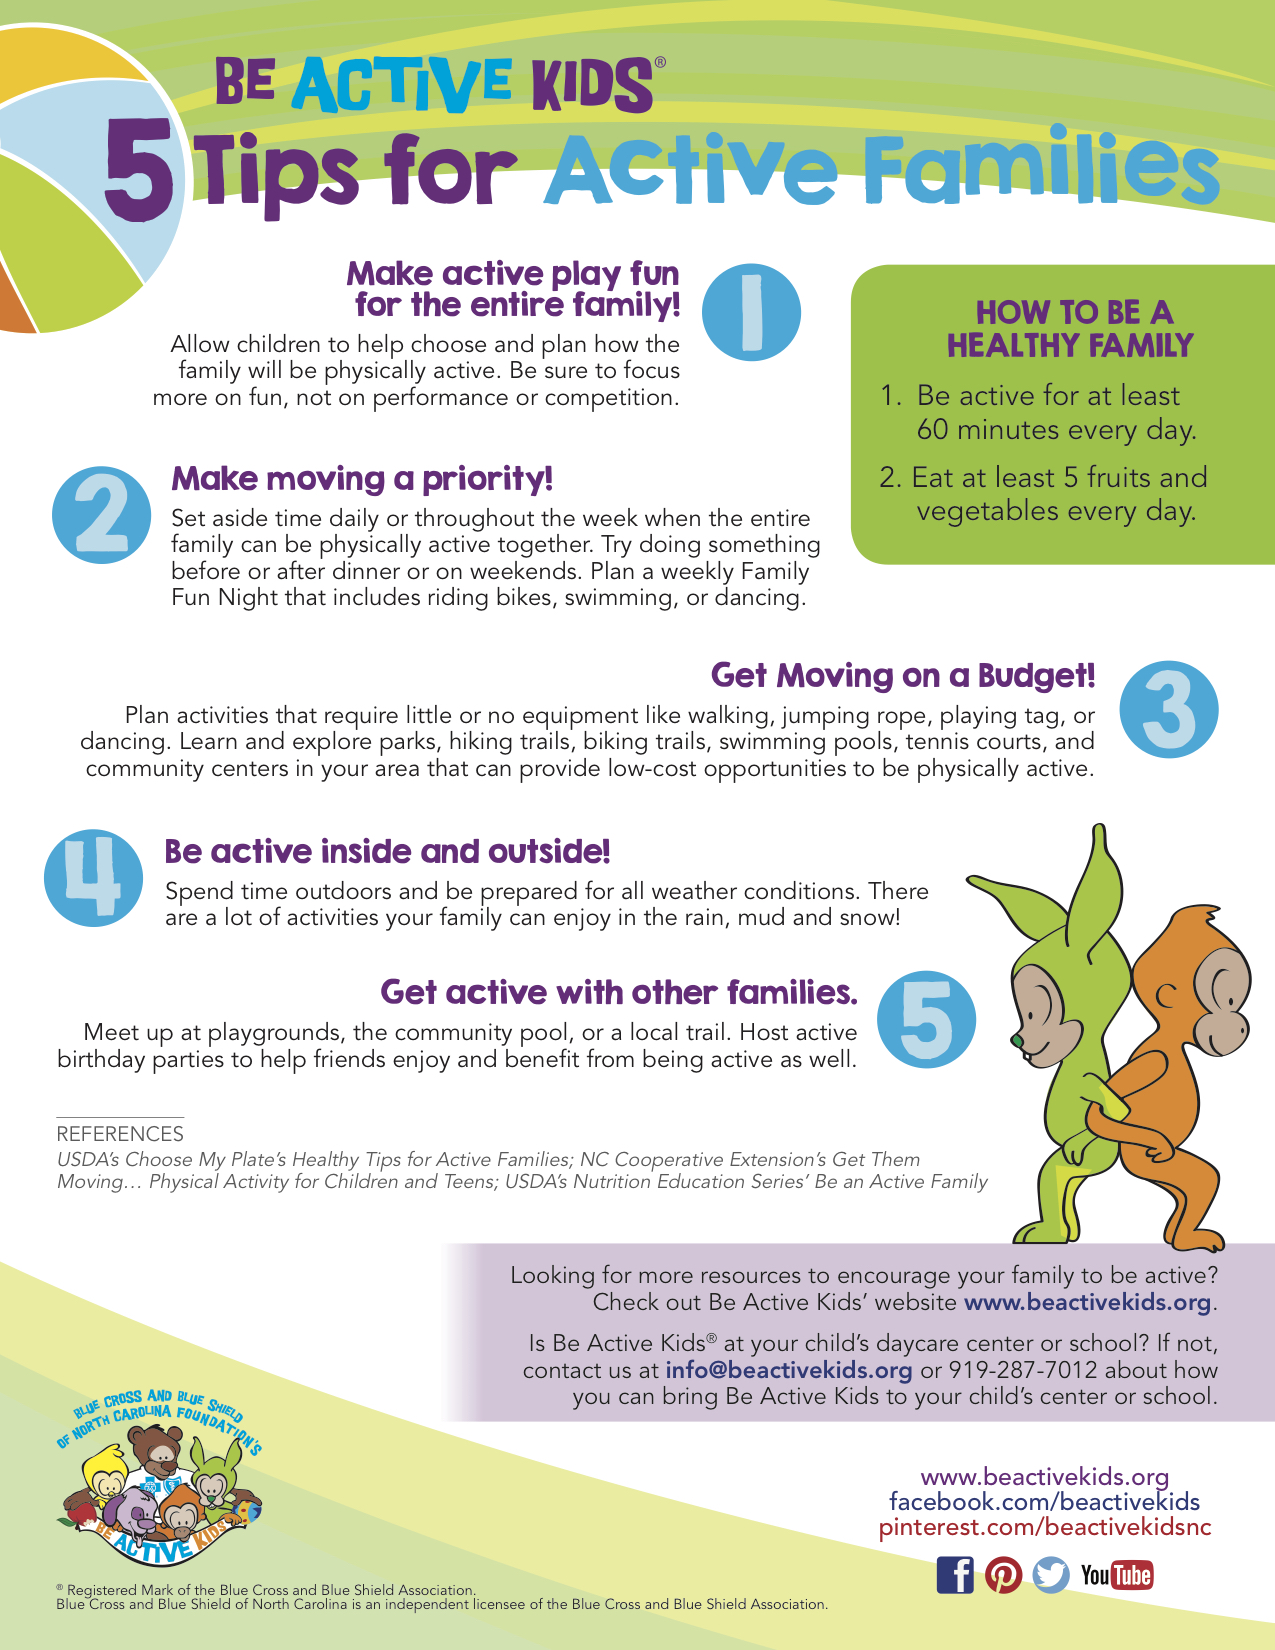 Be Active Kids - 5 Tips Active Families